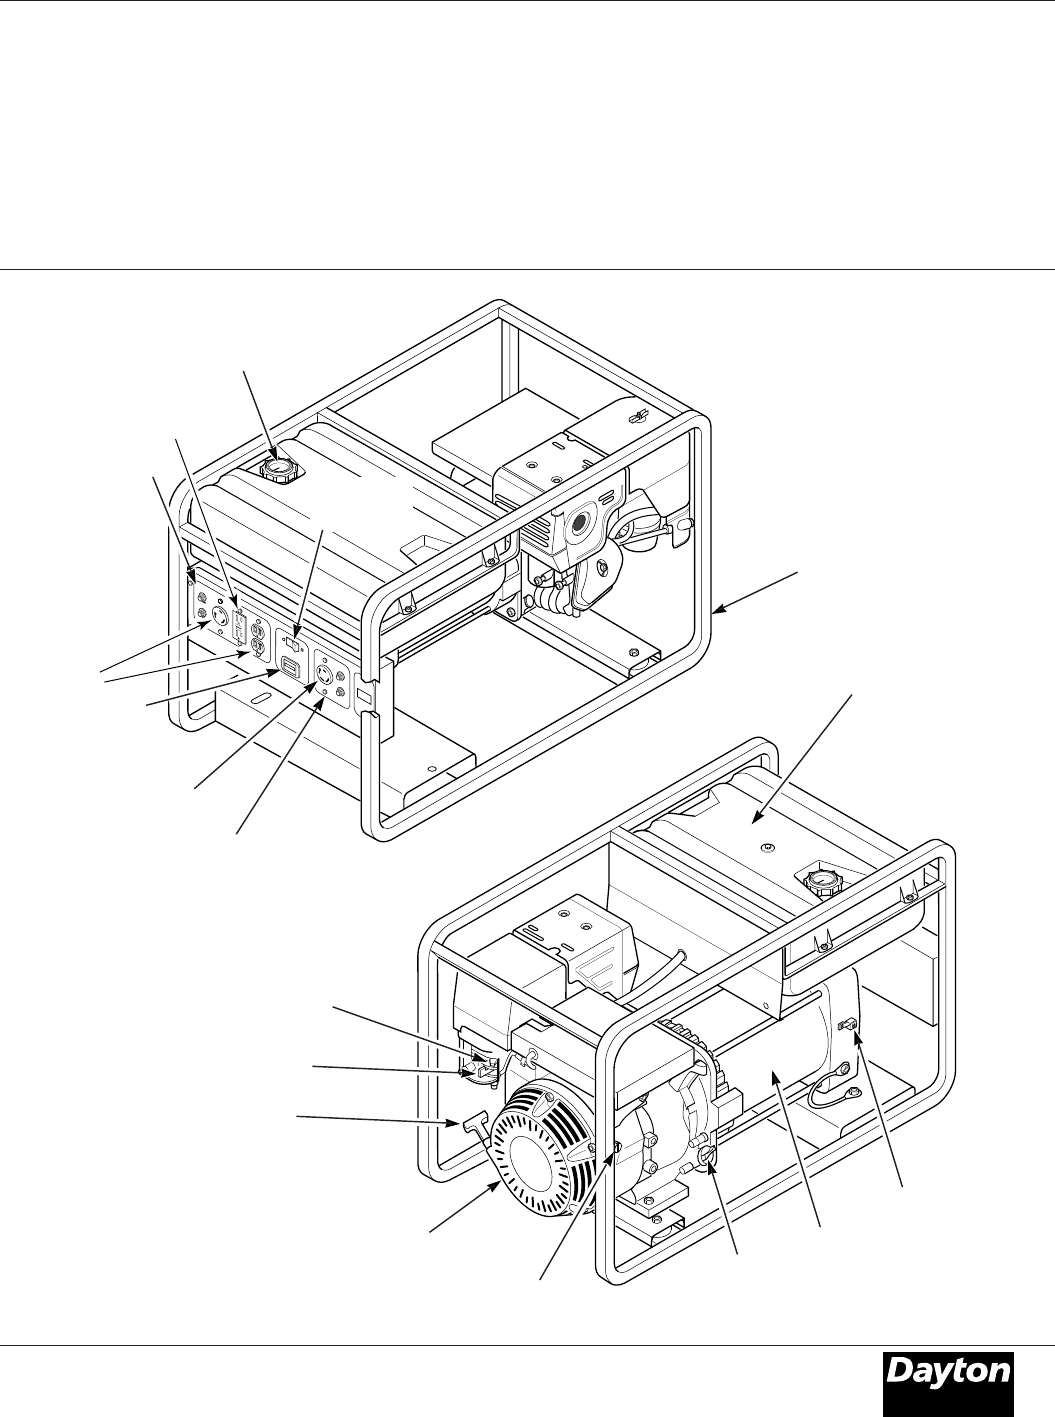 Page 3 of Dayton Portable Generator 3WY46 User Guide